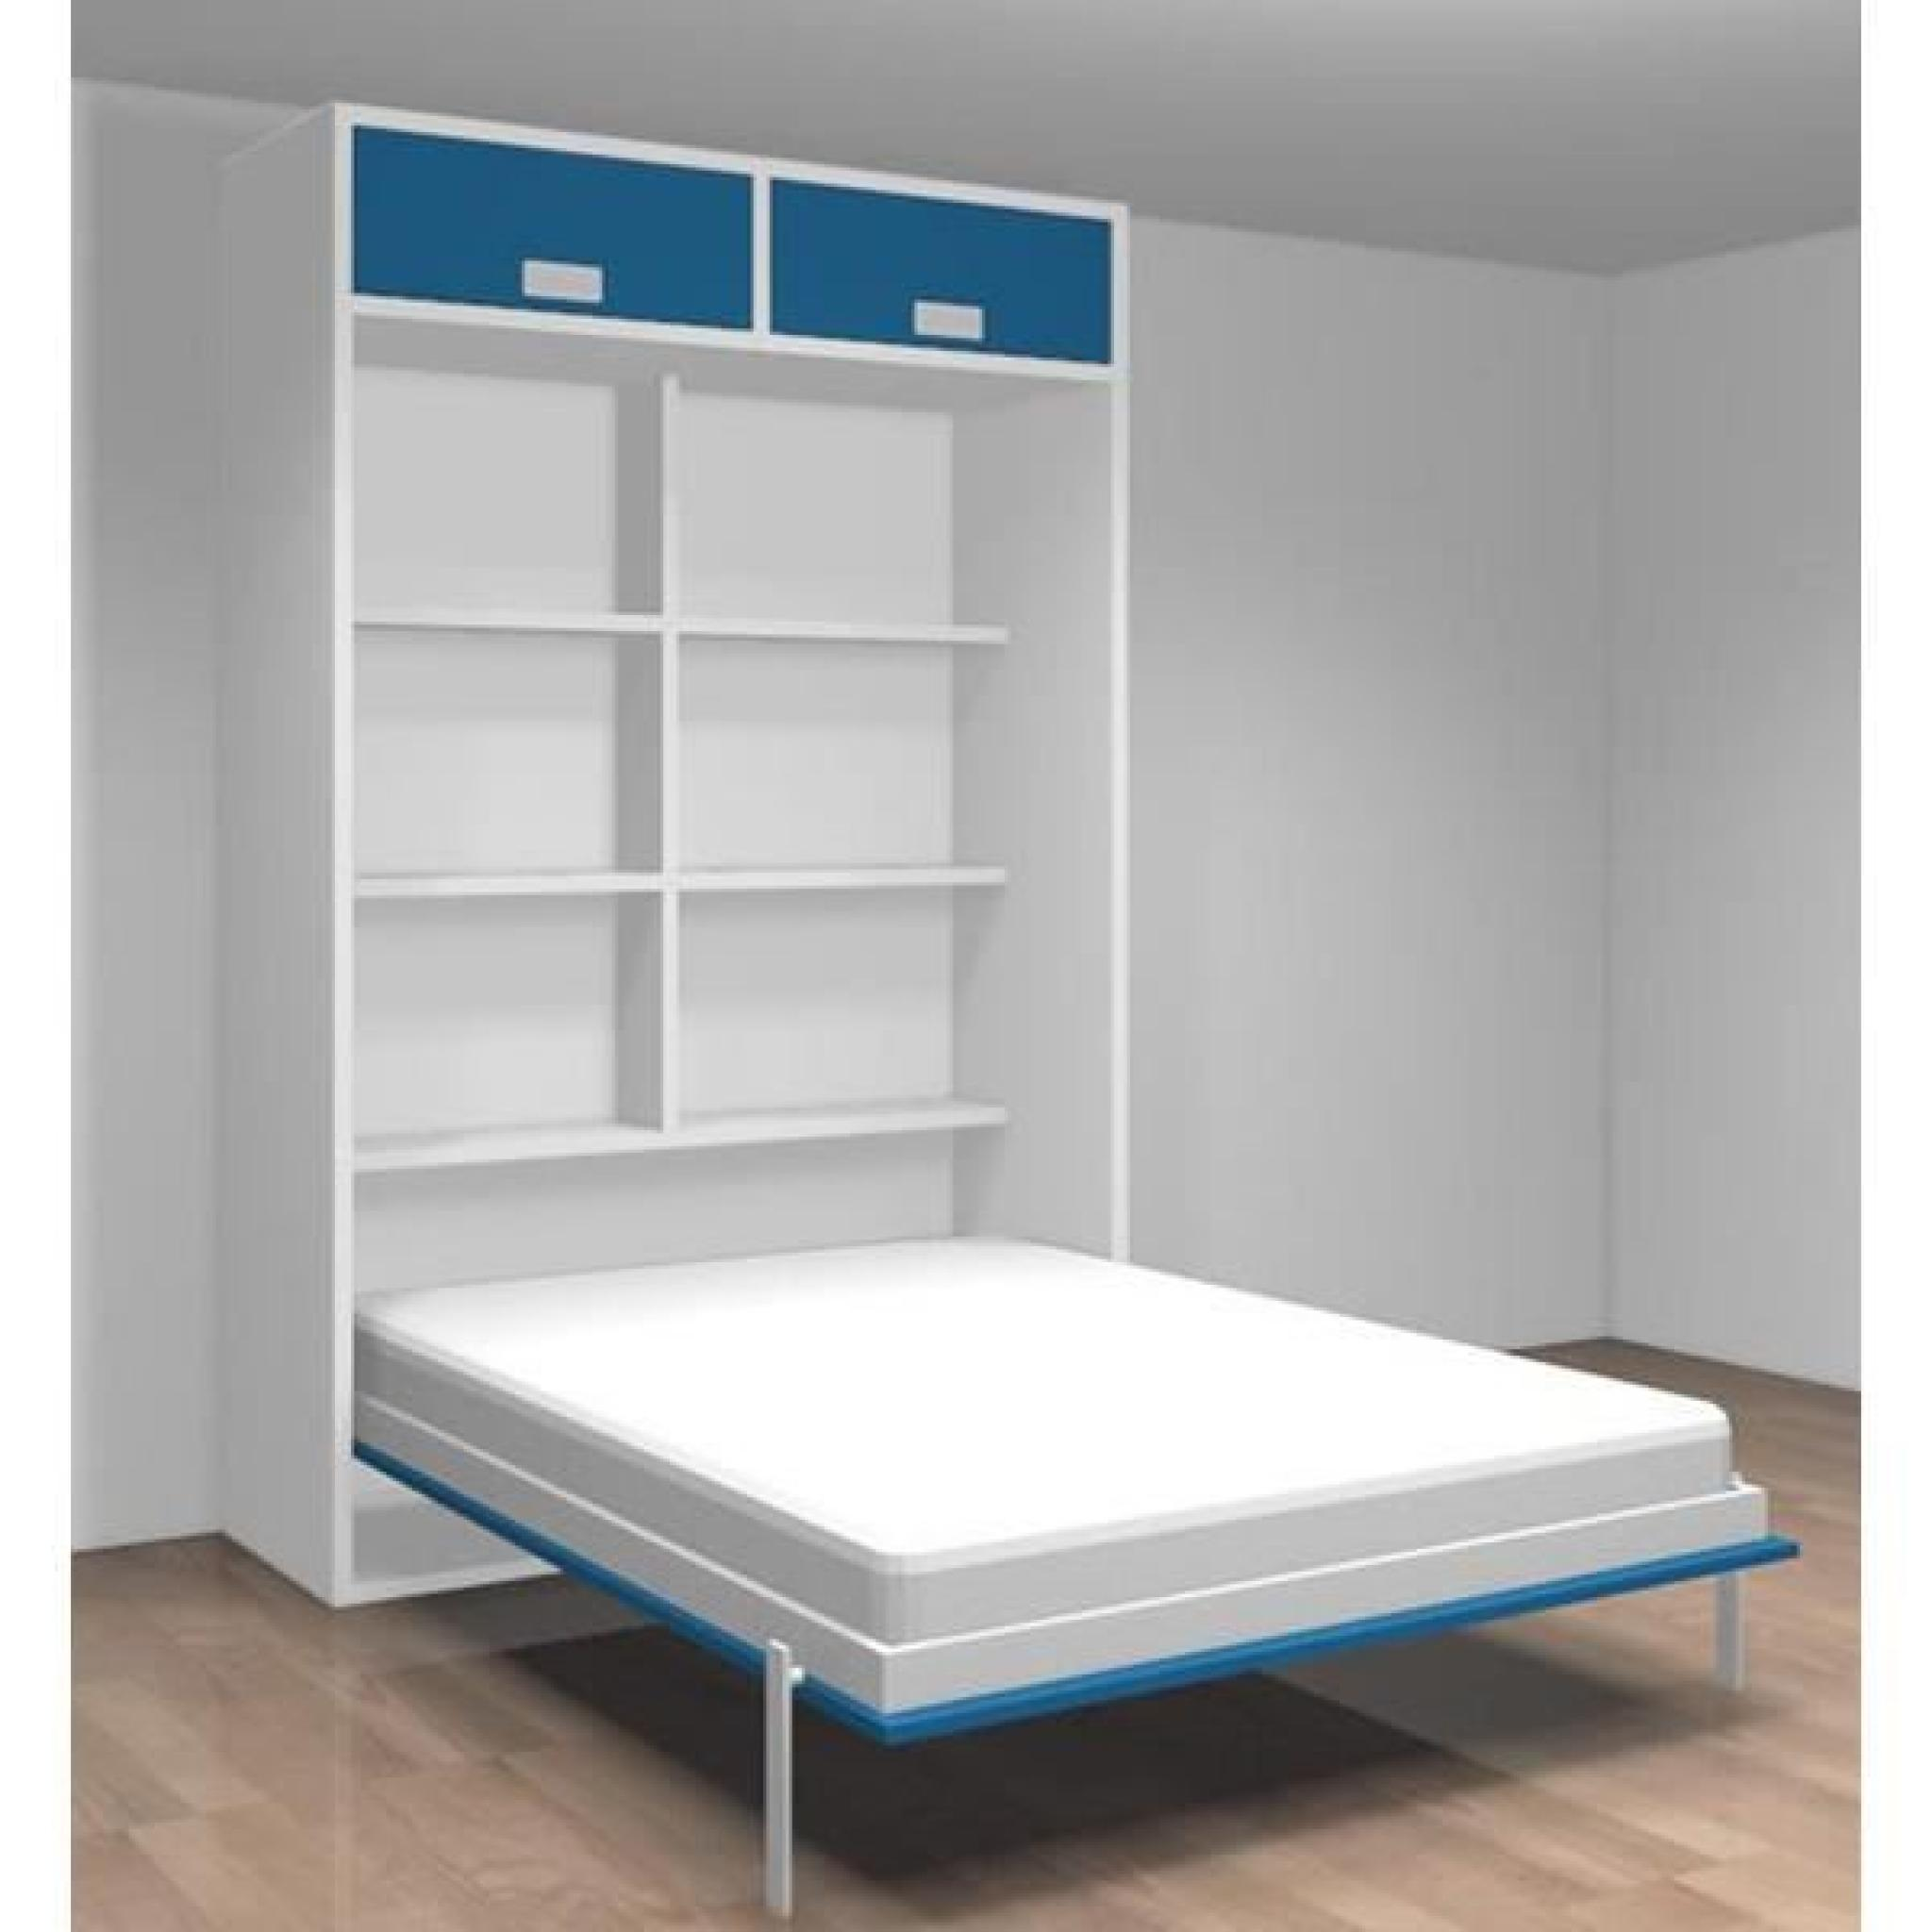 lit relevable avec tag res teo 140x190 blanc bleu achat. Black Bedroom Furniture Sets. Home Design Ideas